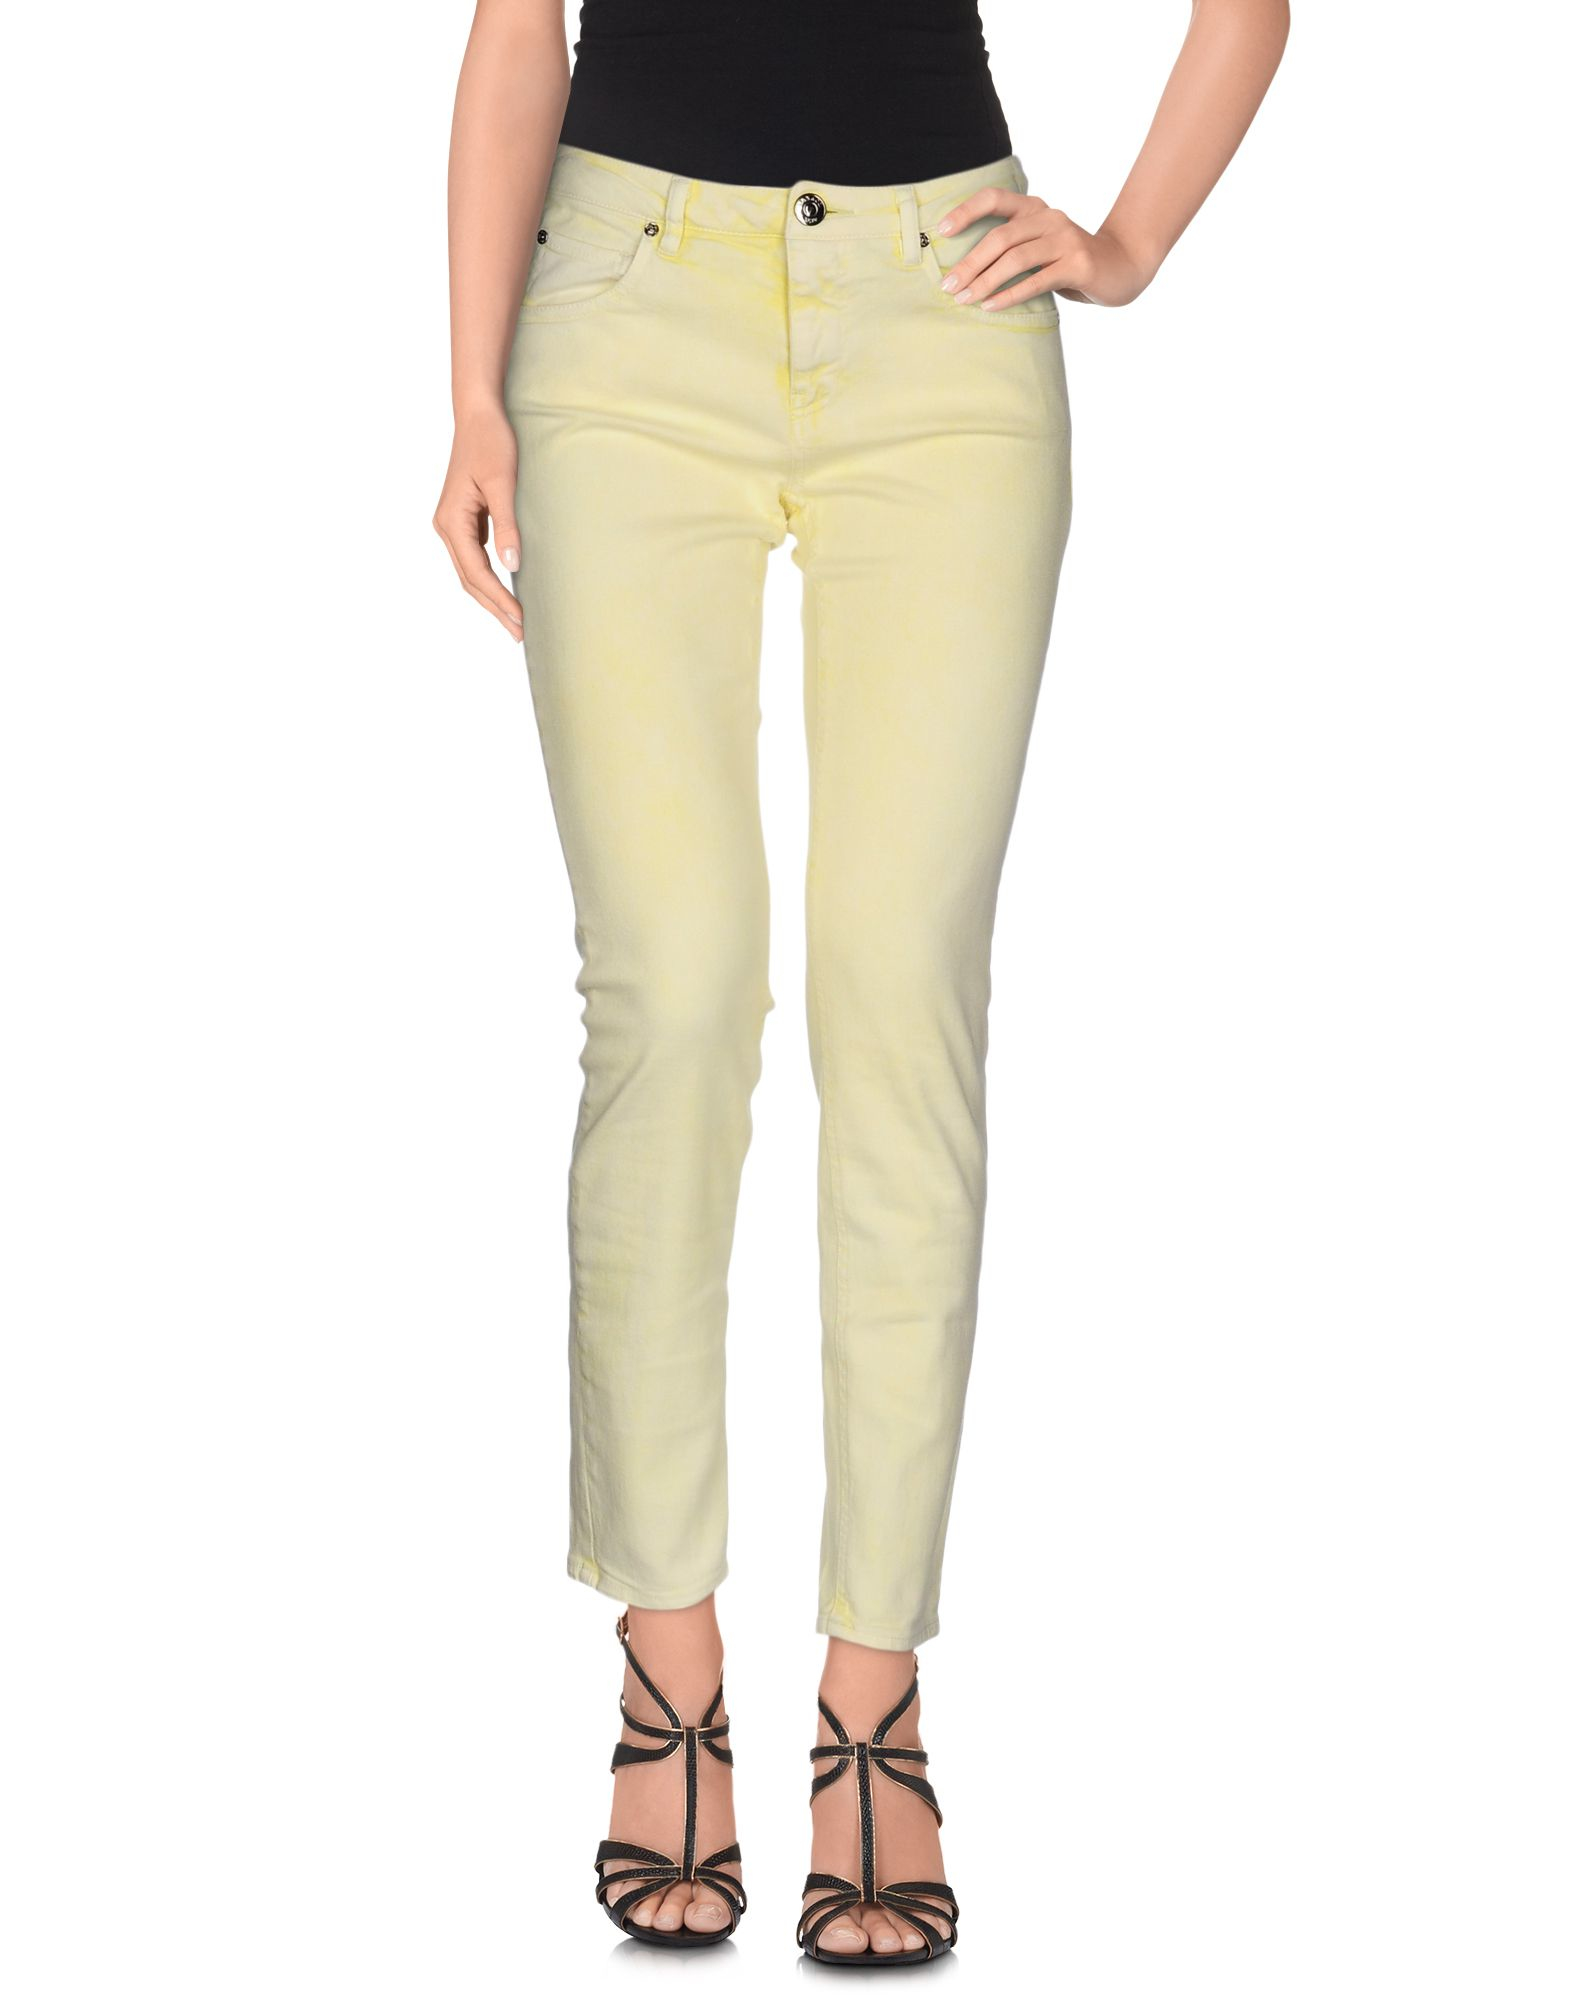 distrib-wjmx2fn9.ga provides light yellow jeans items from China top selected Fabric, Clothing Fabric, Apparel suppliers at wholesale prices with worldwide delivery. You can find light, Men light yellow jeans free shipping, light yellow skinny jeans and view light yellow jeans .